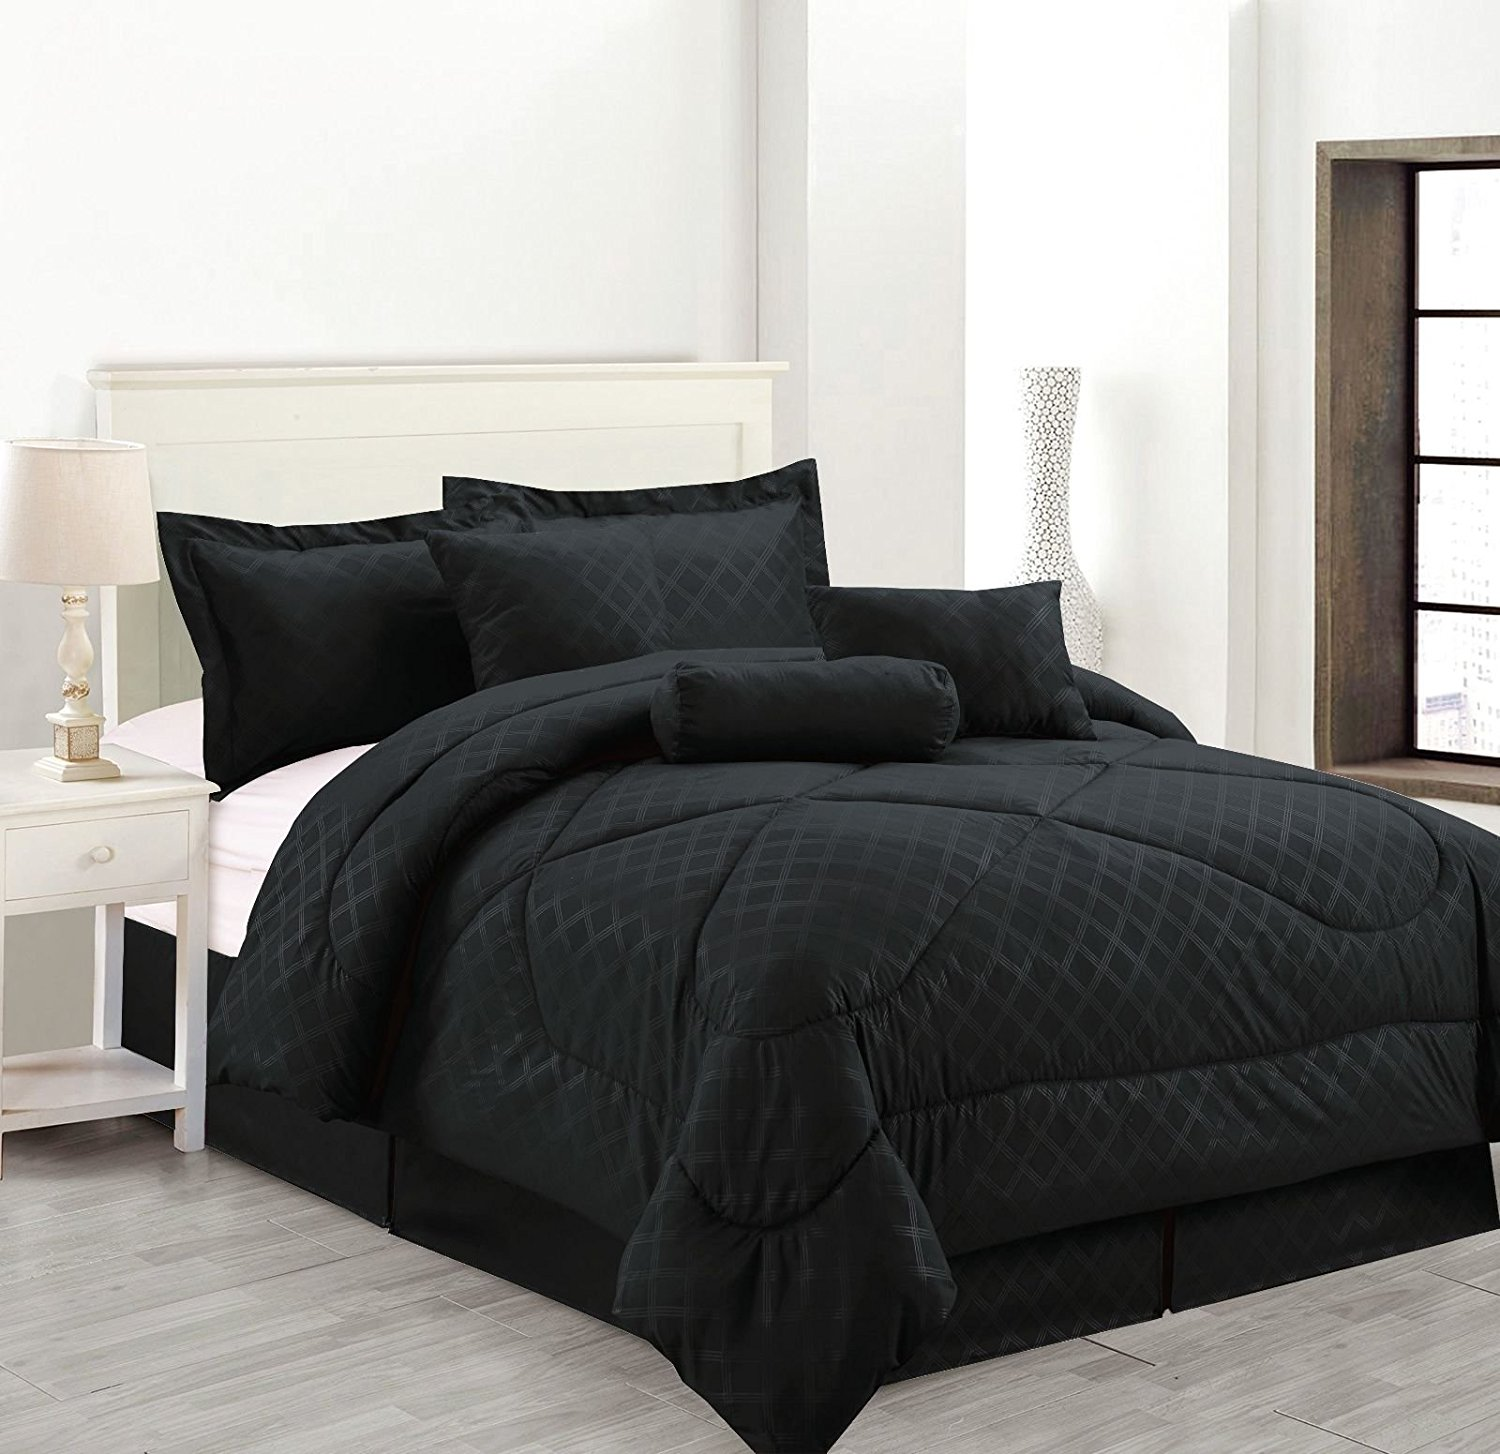 Luxury Hotel King Size 7-Piece Embossed Solid Over-Sized Comforter Set Bed in A Bag Black